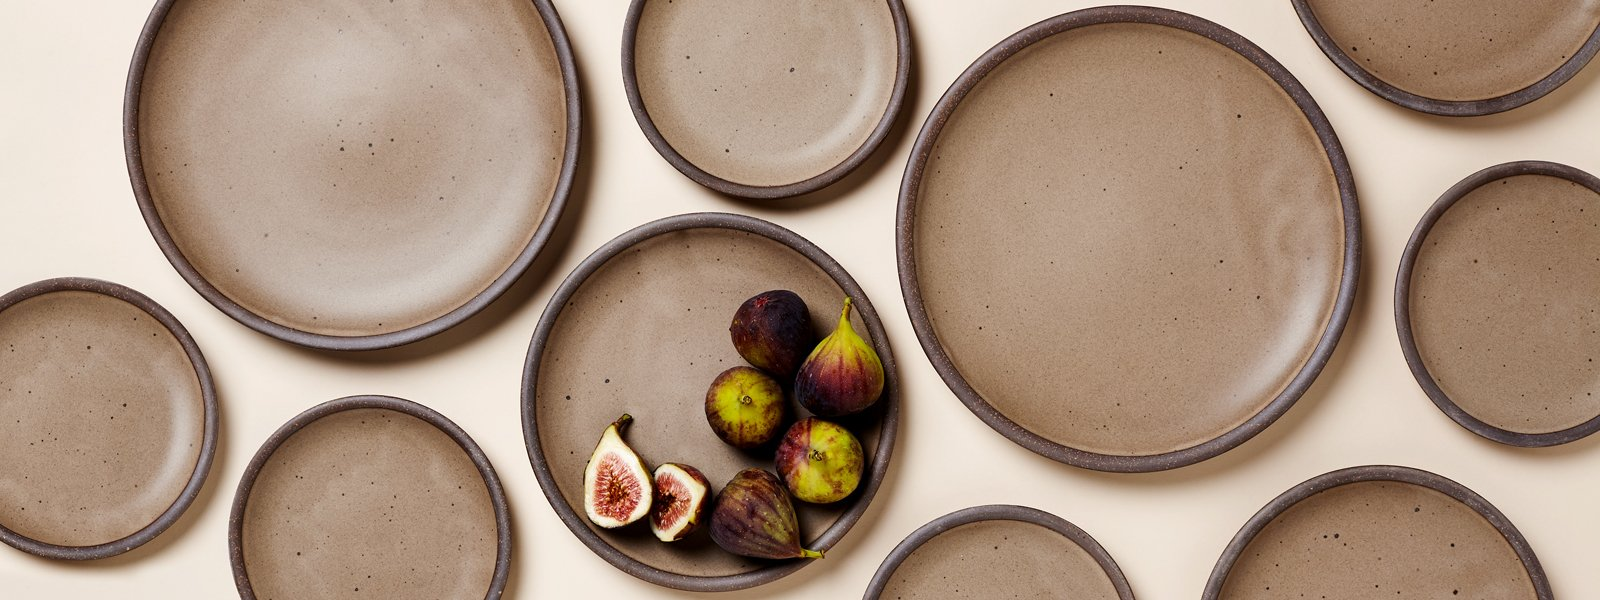 The Dinner Plate, Side Plate and Cake Plate by East Fork Pottery in Morel glaze with ripe purple figs placed in the center